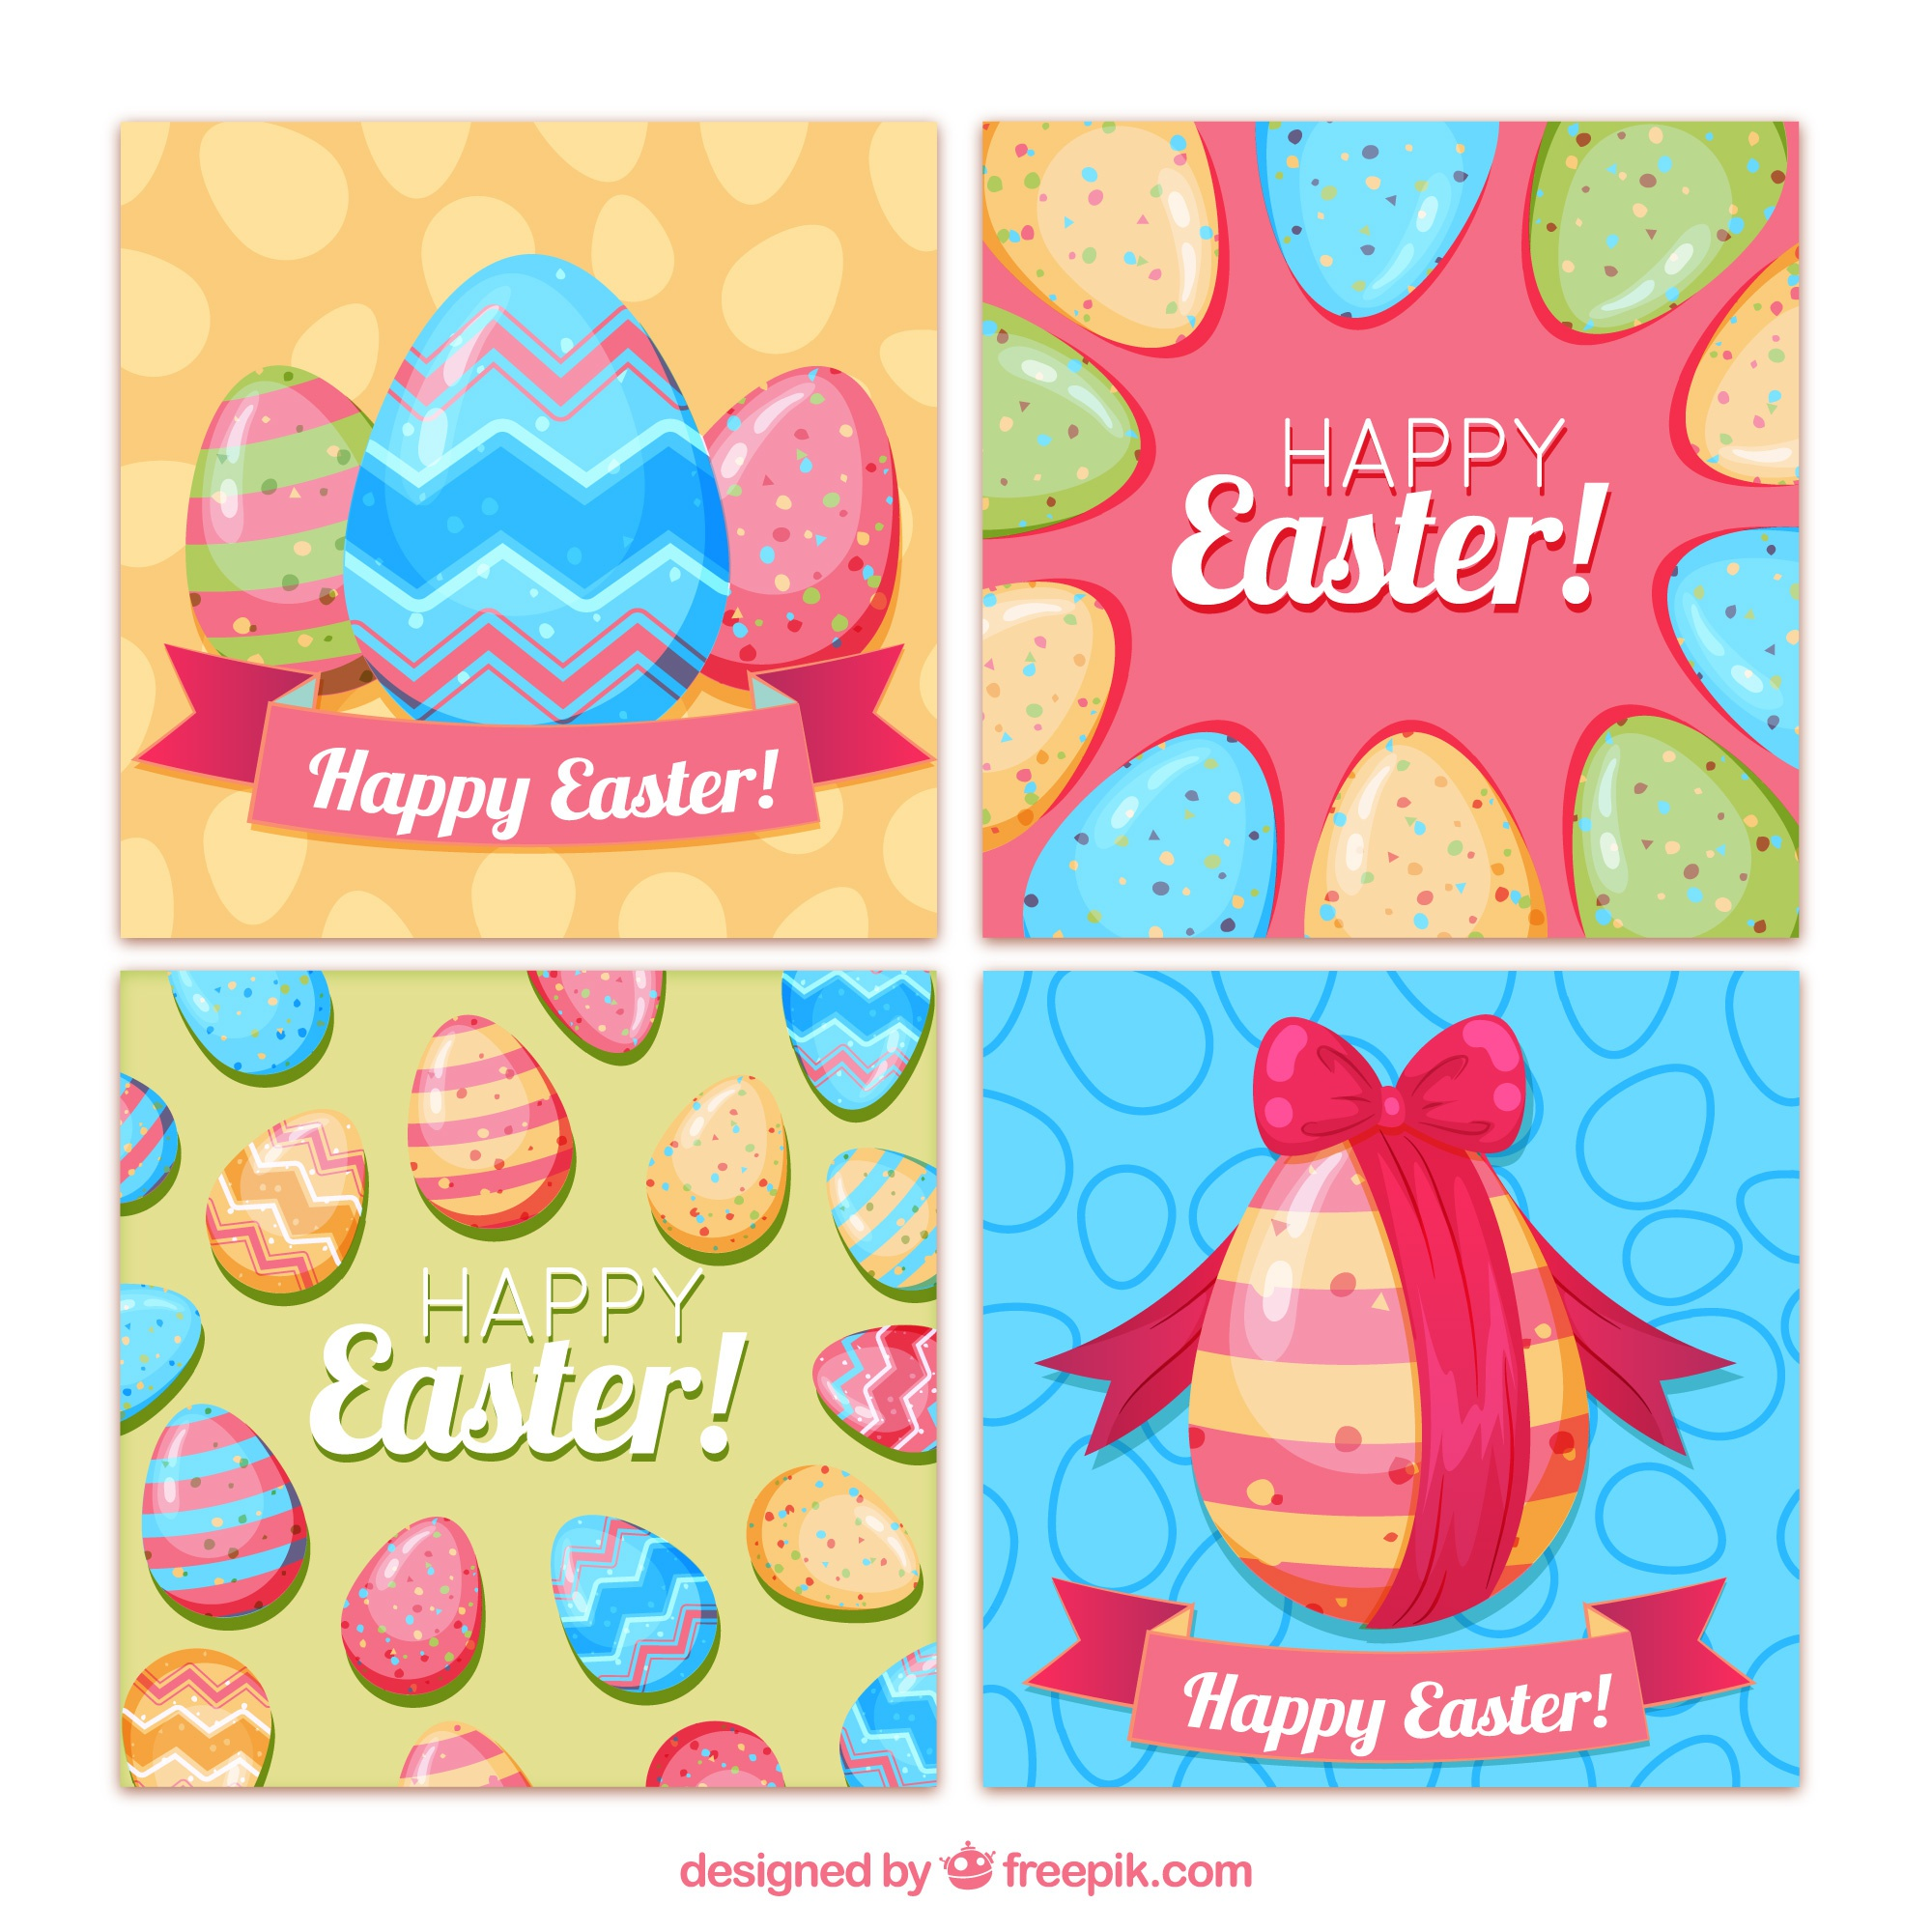 Easter day cards collection with colorful eggs